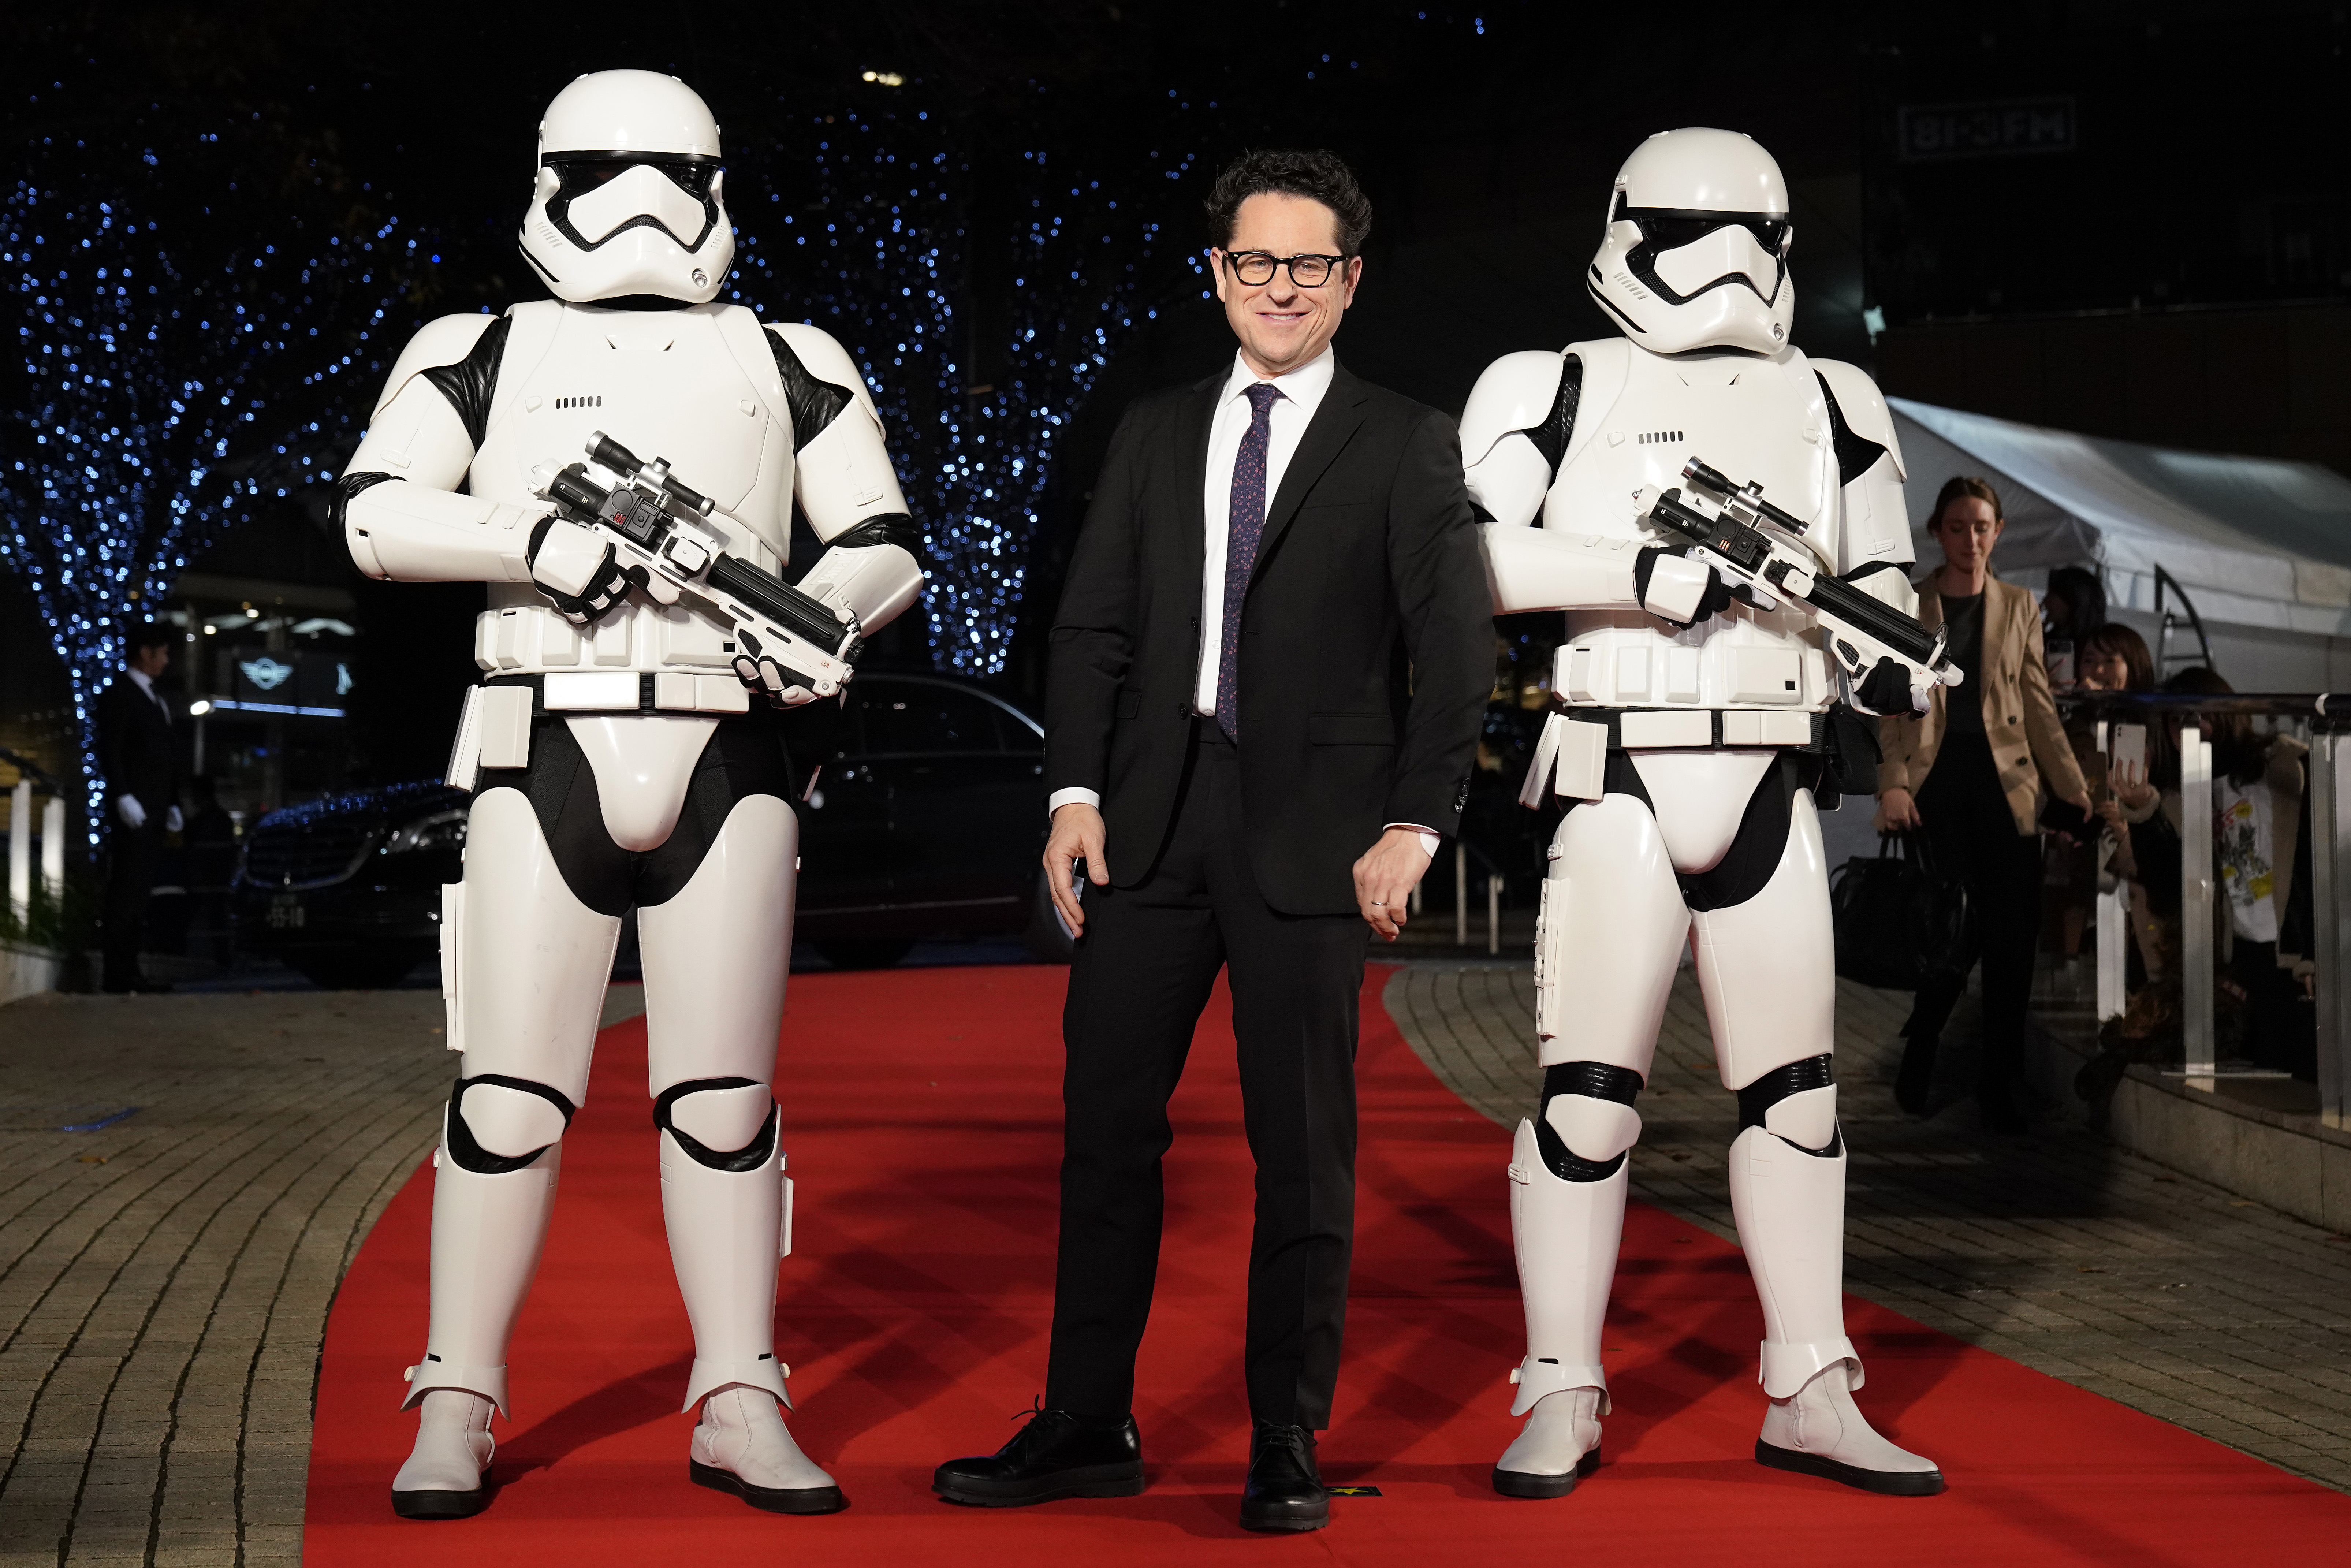 JJ Abrams with Stormtroopers attends the special fan event for 'Star Wars: The Rise of Skywalker' at Roppongi Hills on December 11, 2019 in Tokyo, Japan.